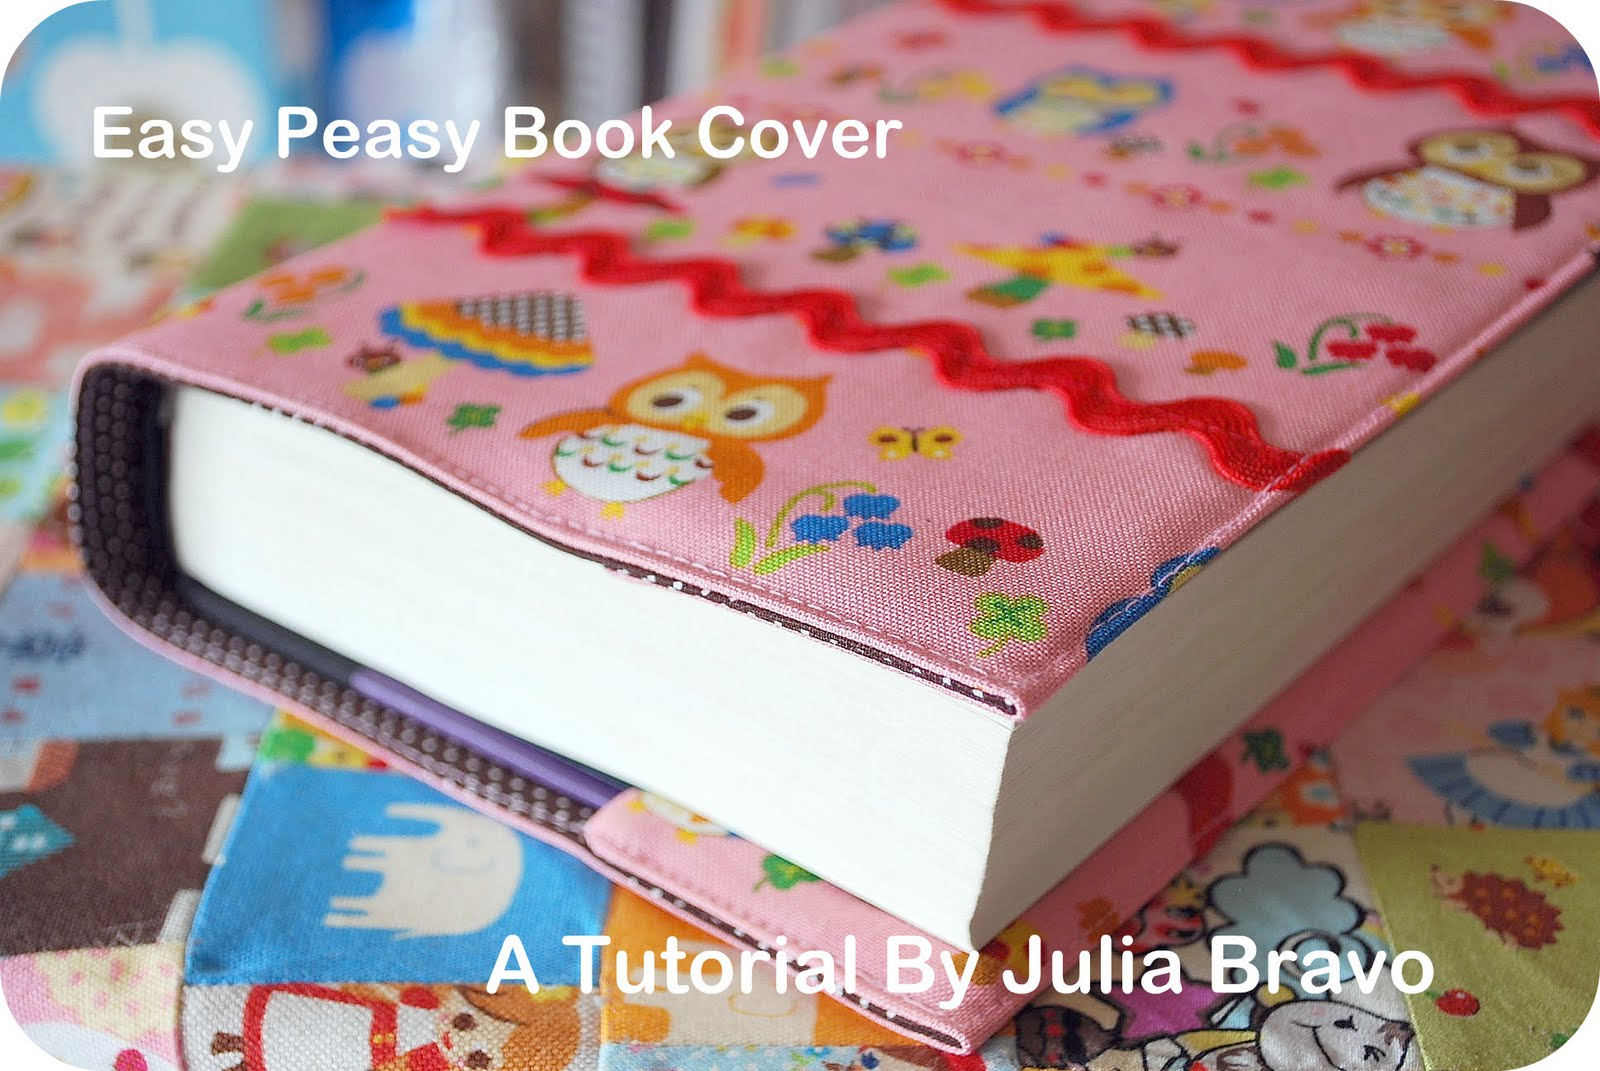 Book Cover Pattern ~ Stitches book cover tutorial image heavy